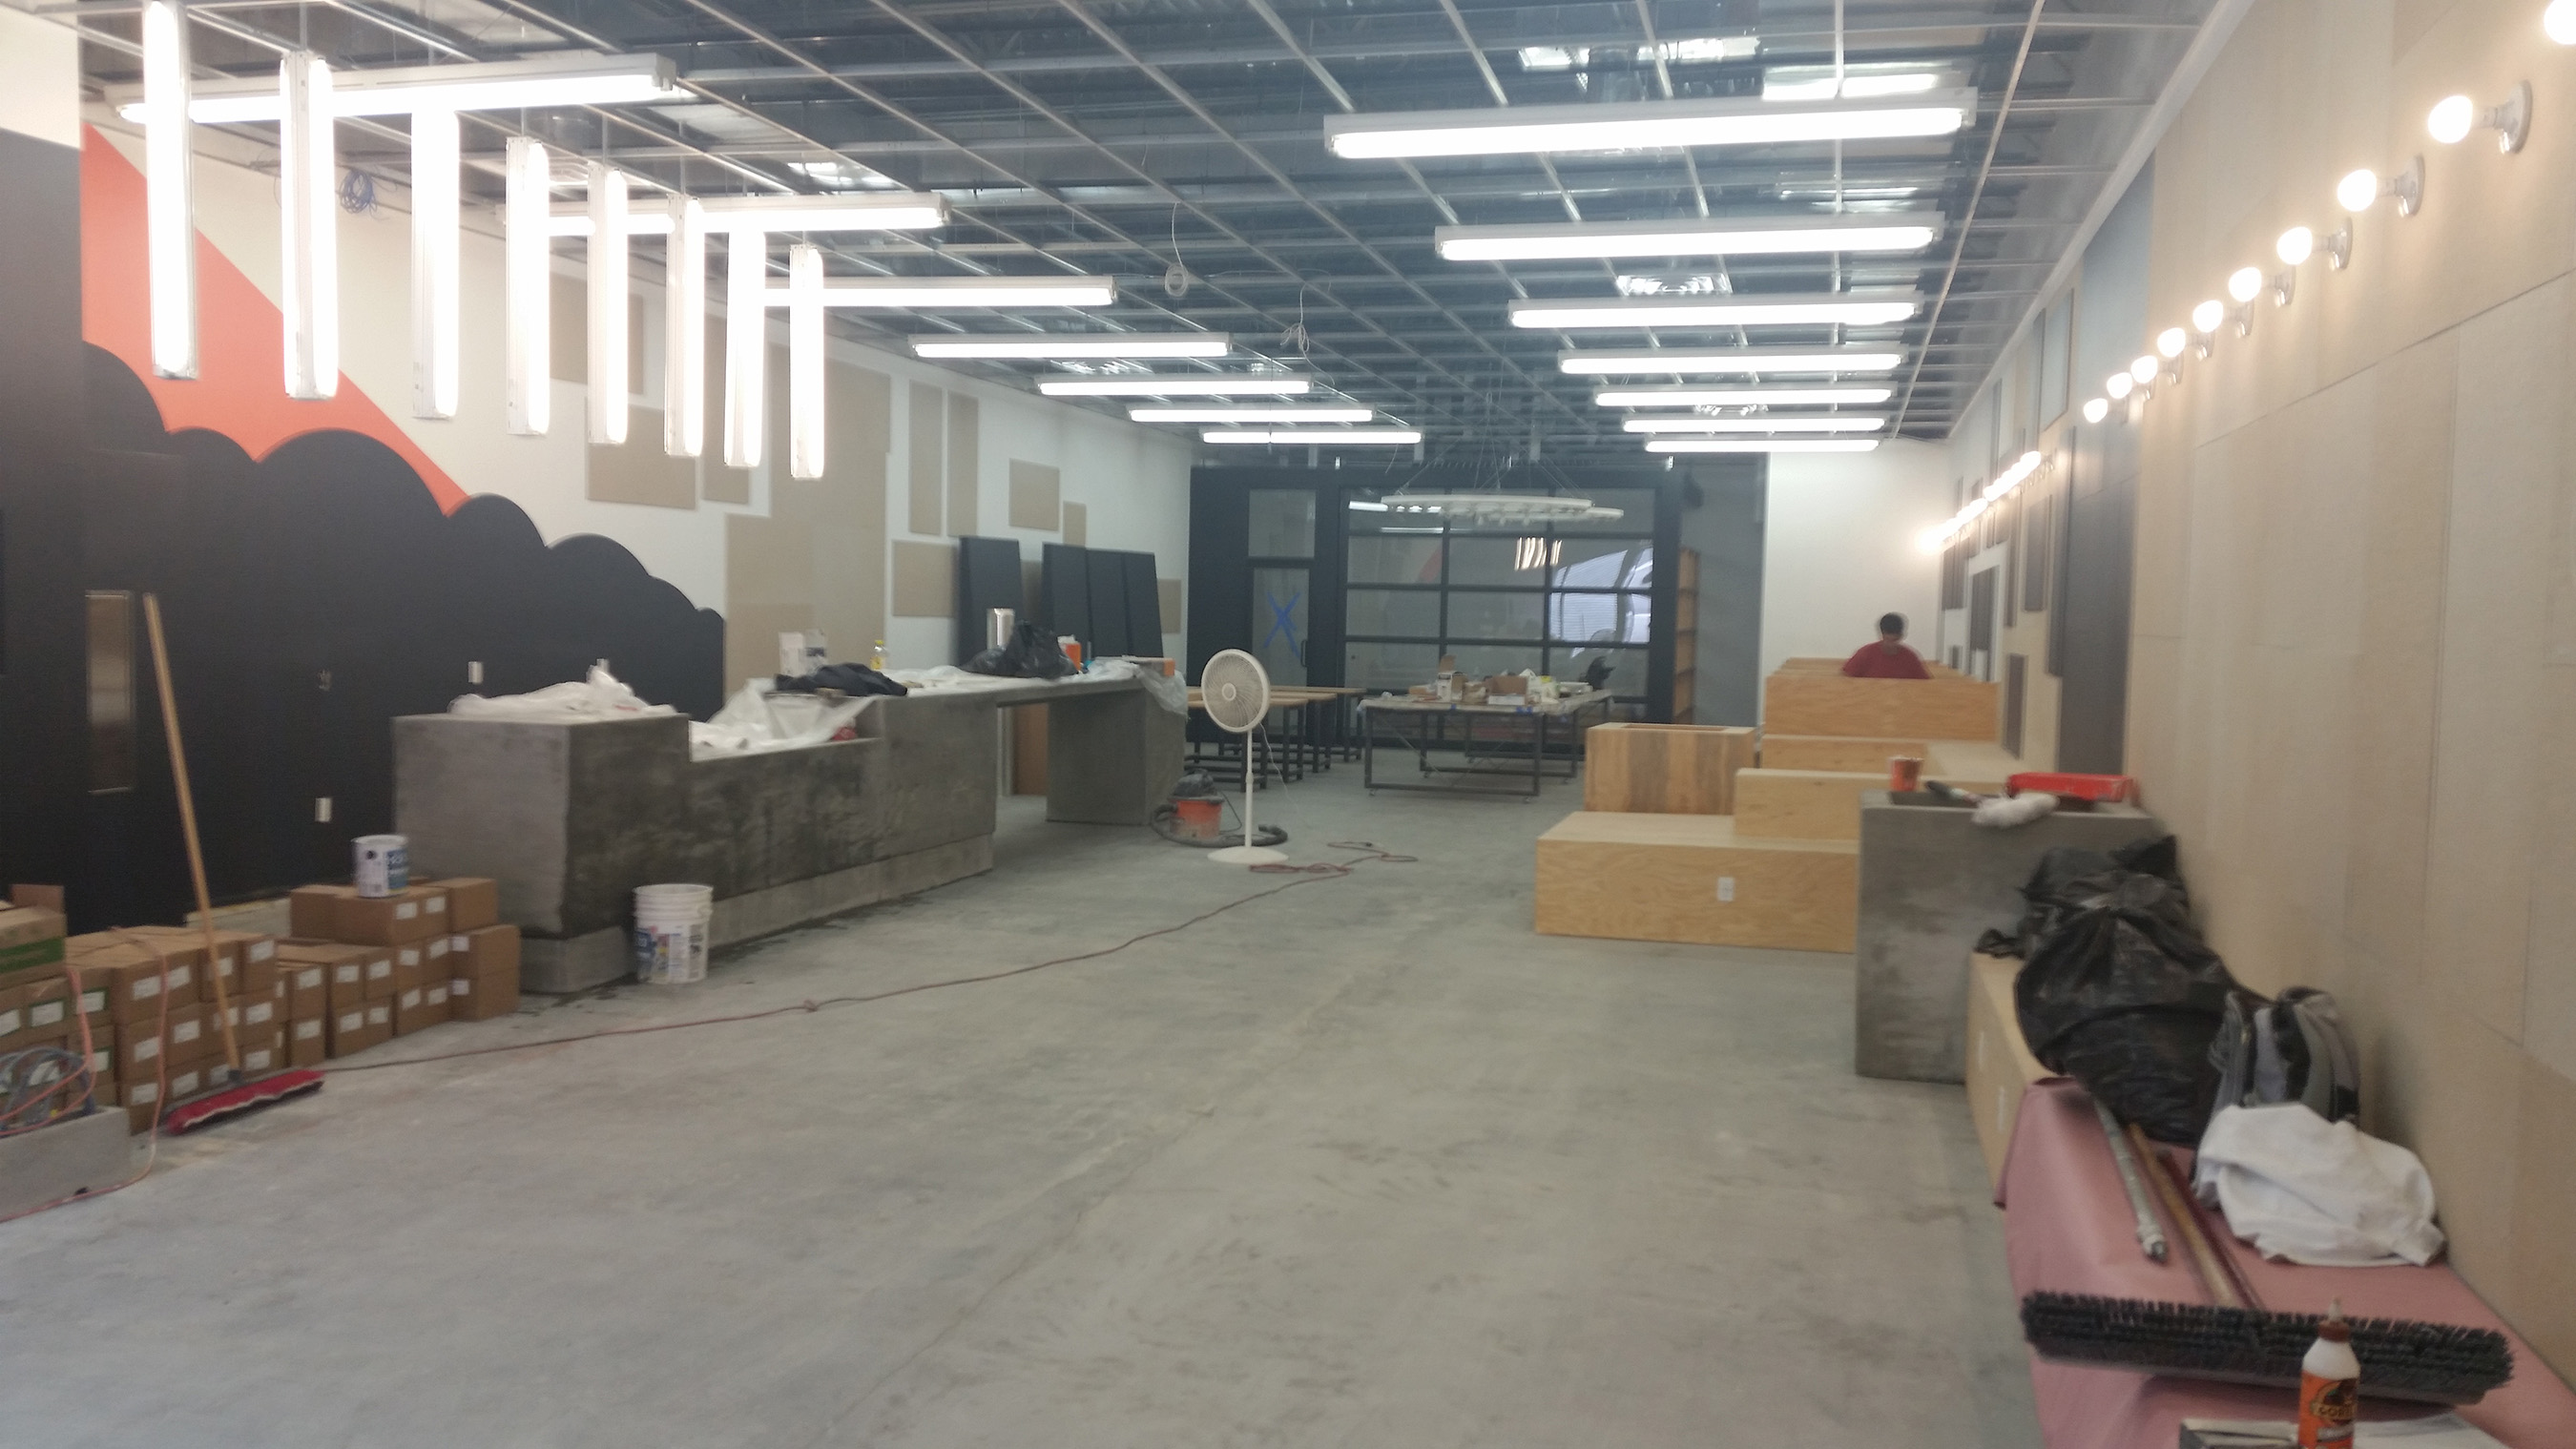 3 Black Cats Cafe undergoes construction prior to grand opening.